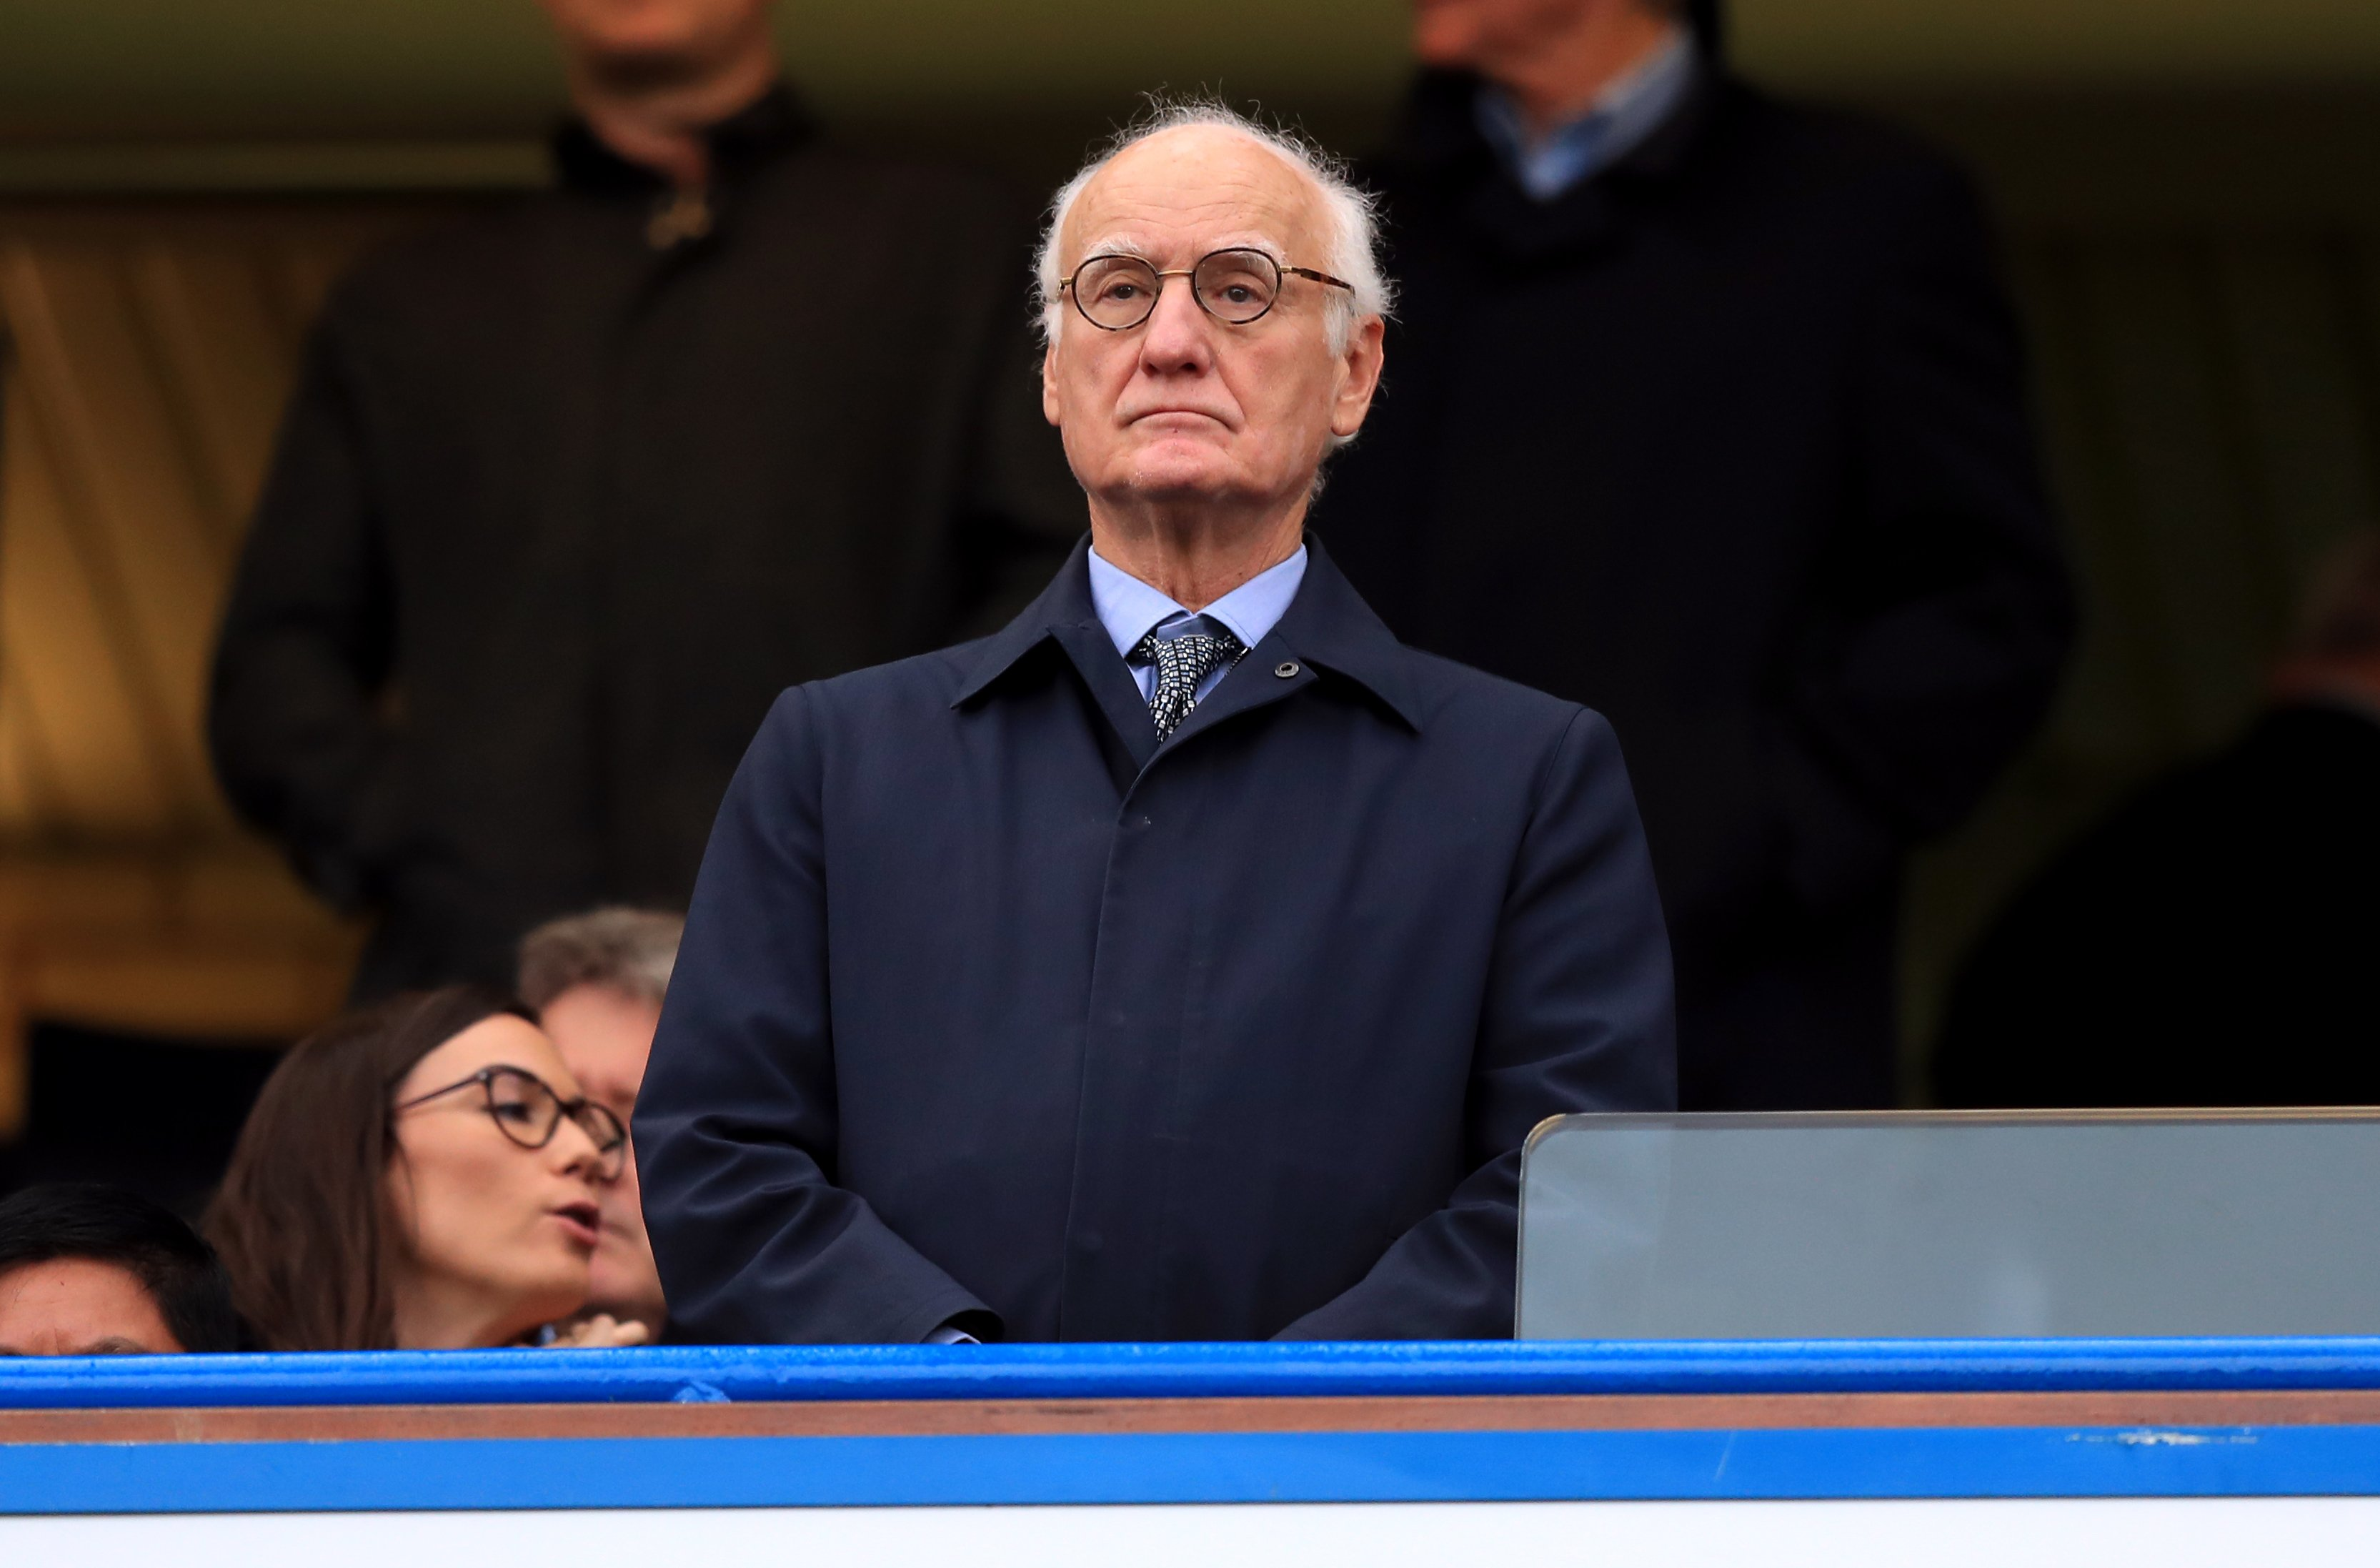 Bruce Buck hopes other clubs follow Chelsea's lead in the fight against racism